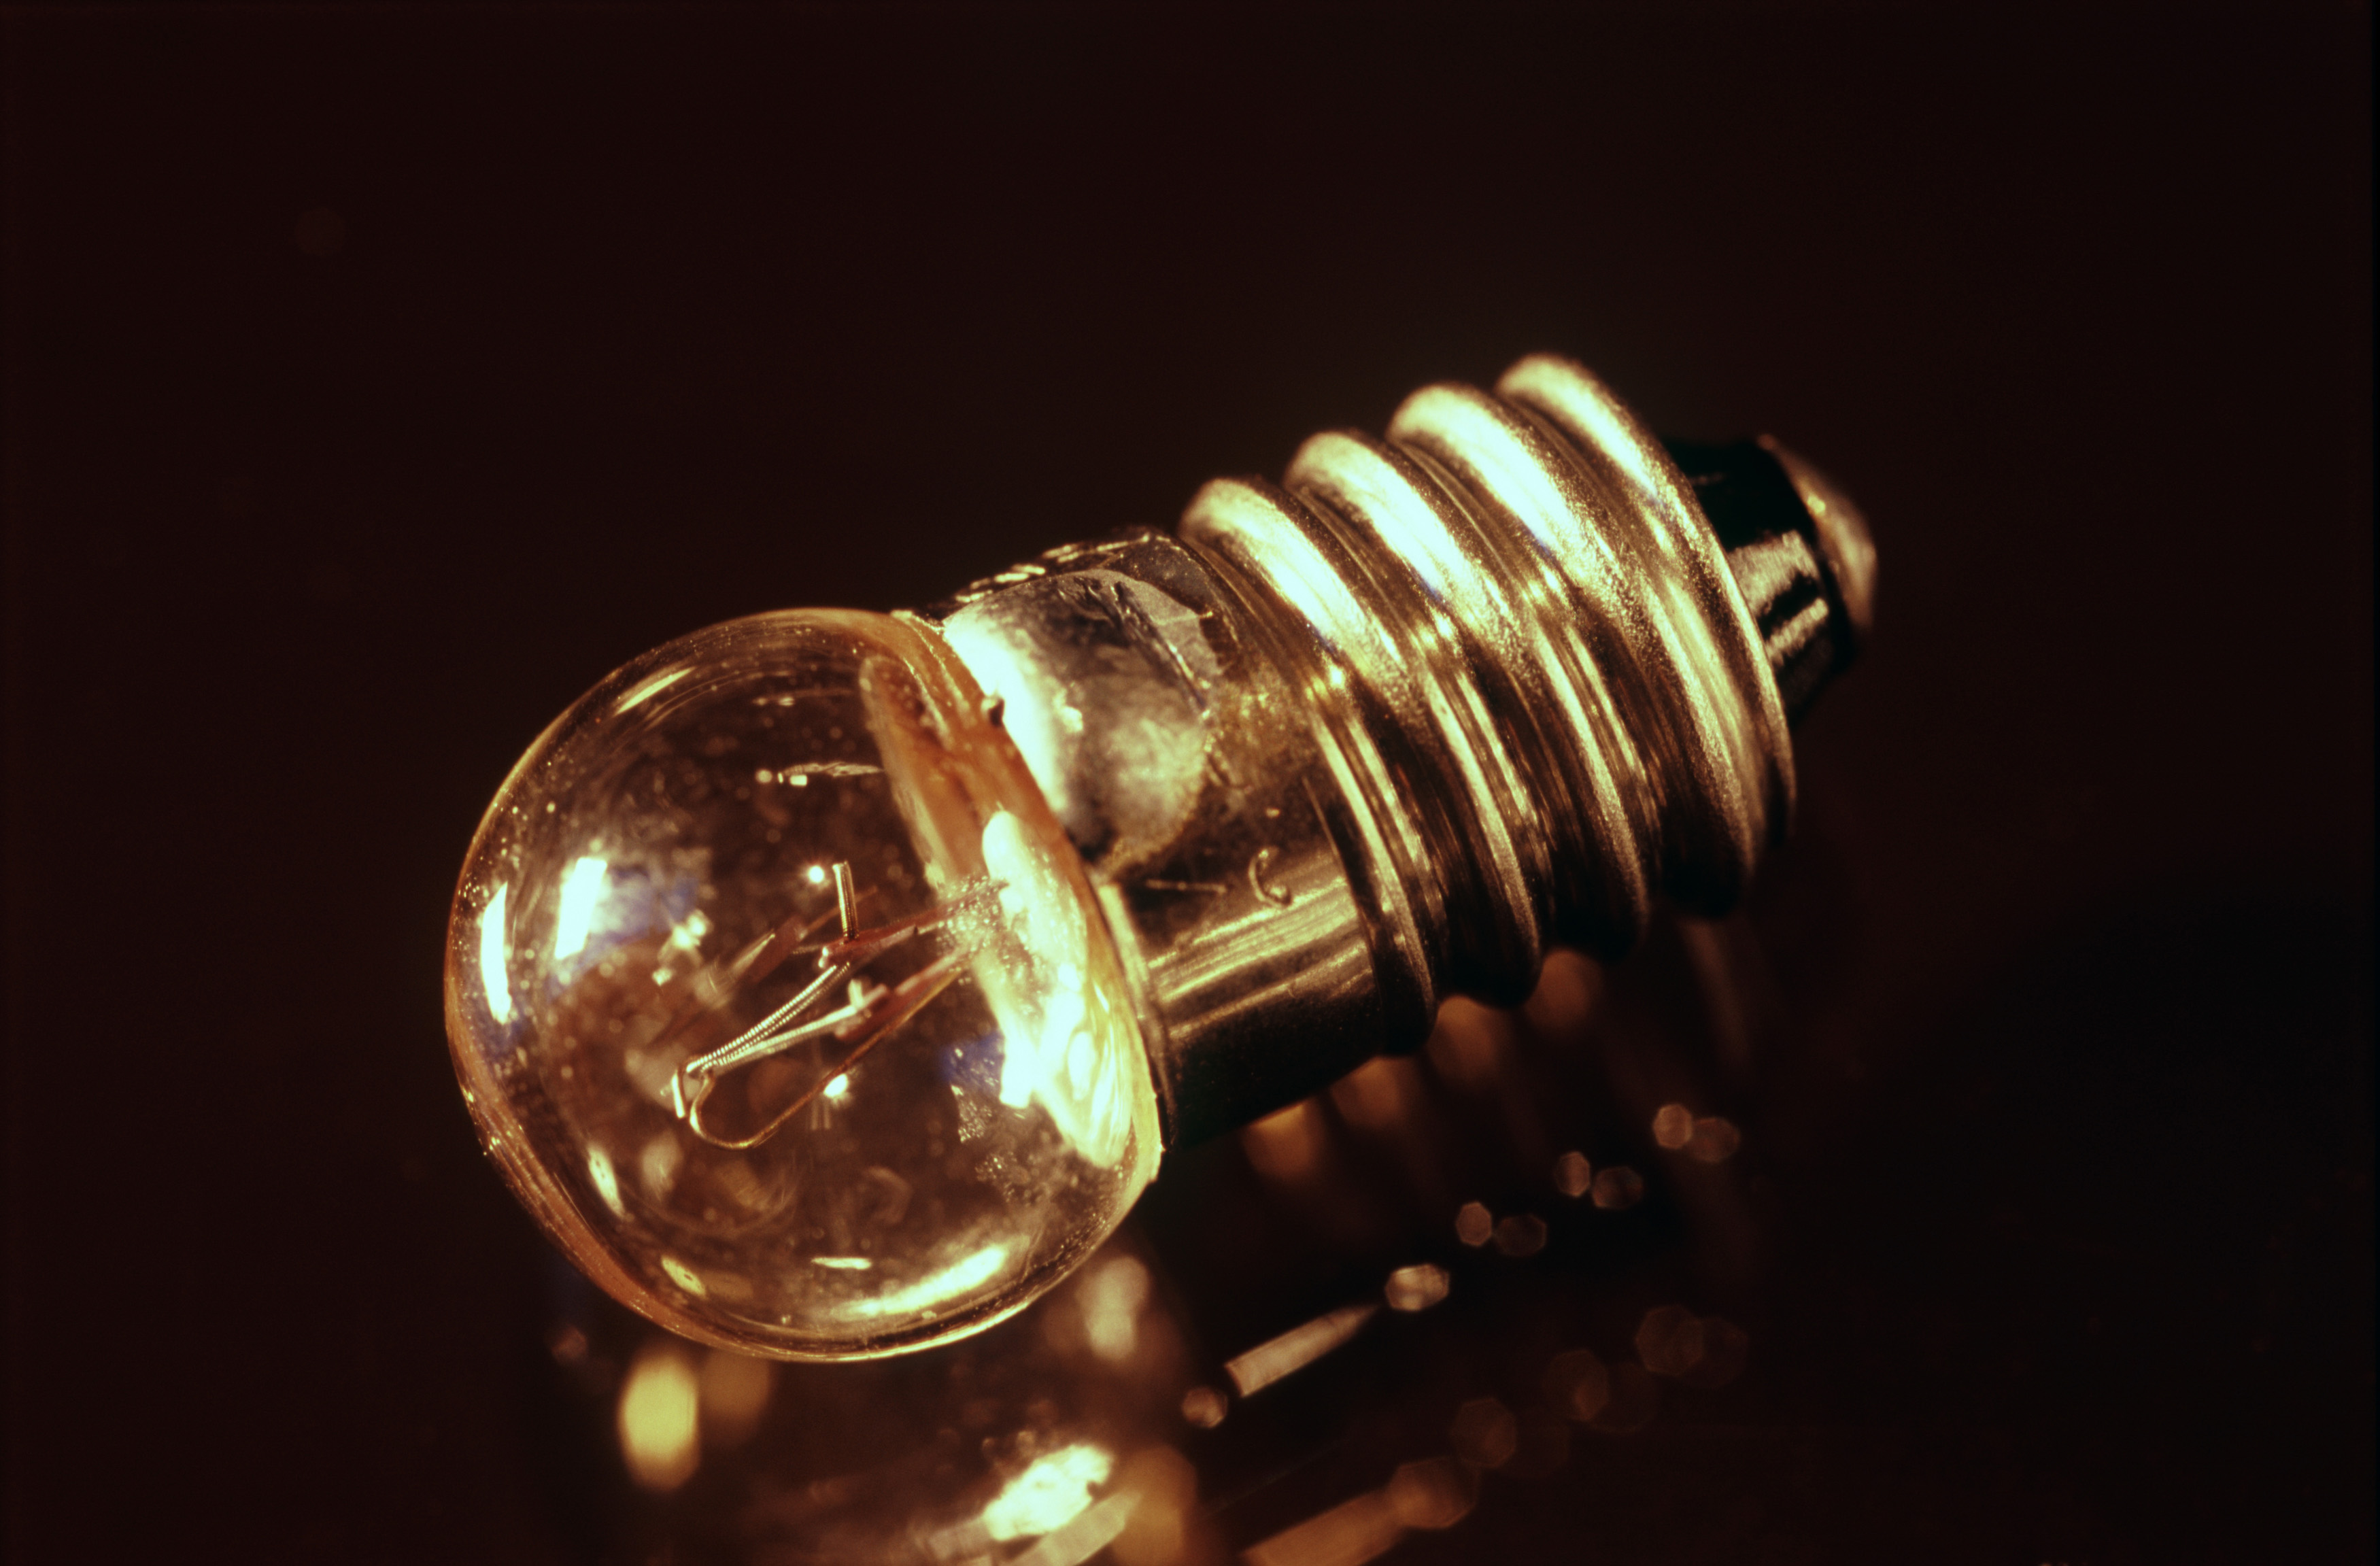 Small light bulb for a torch or flashlight with a screw thread on a dark reflective surface